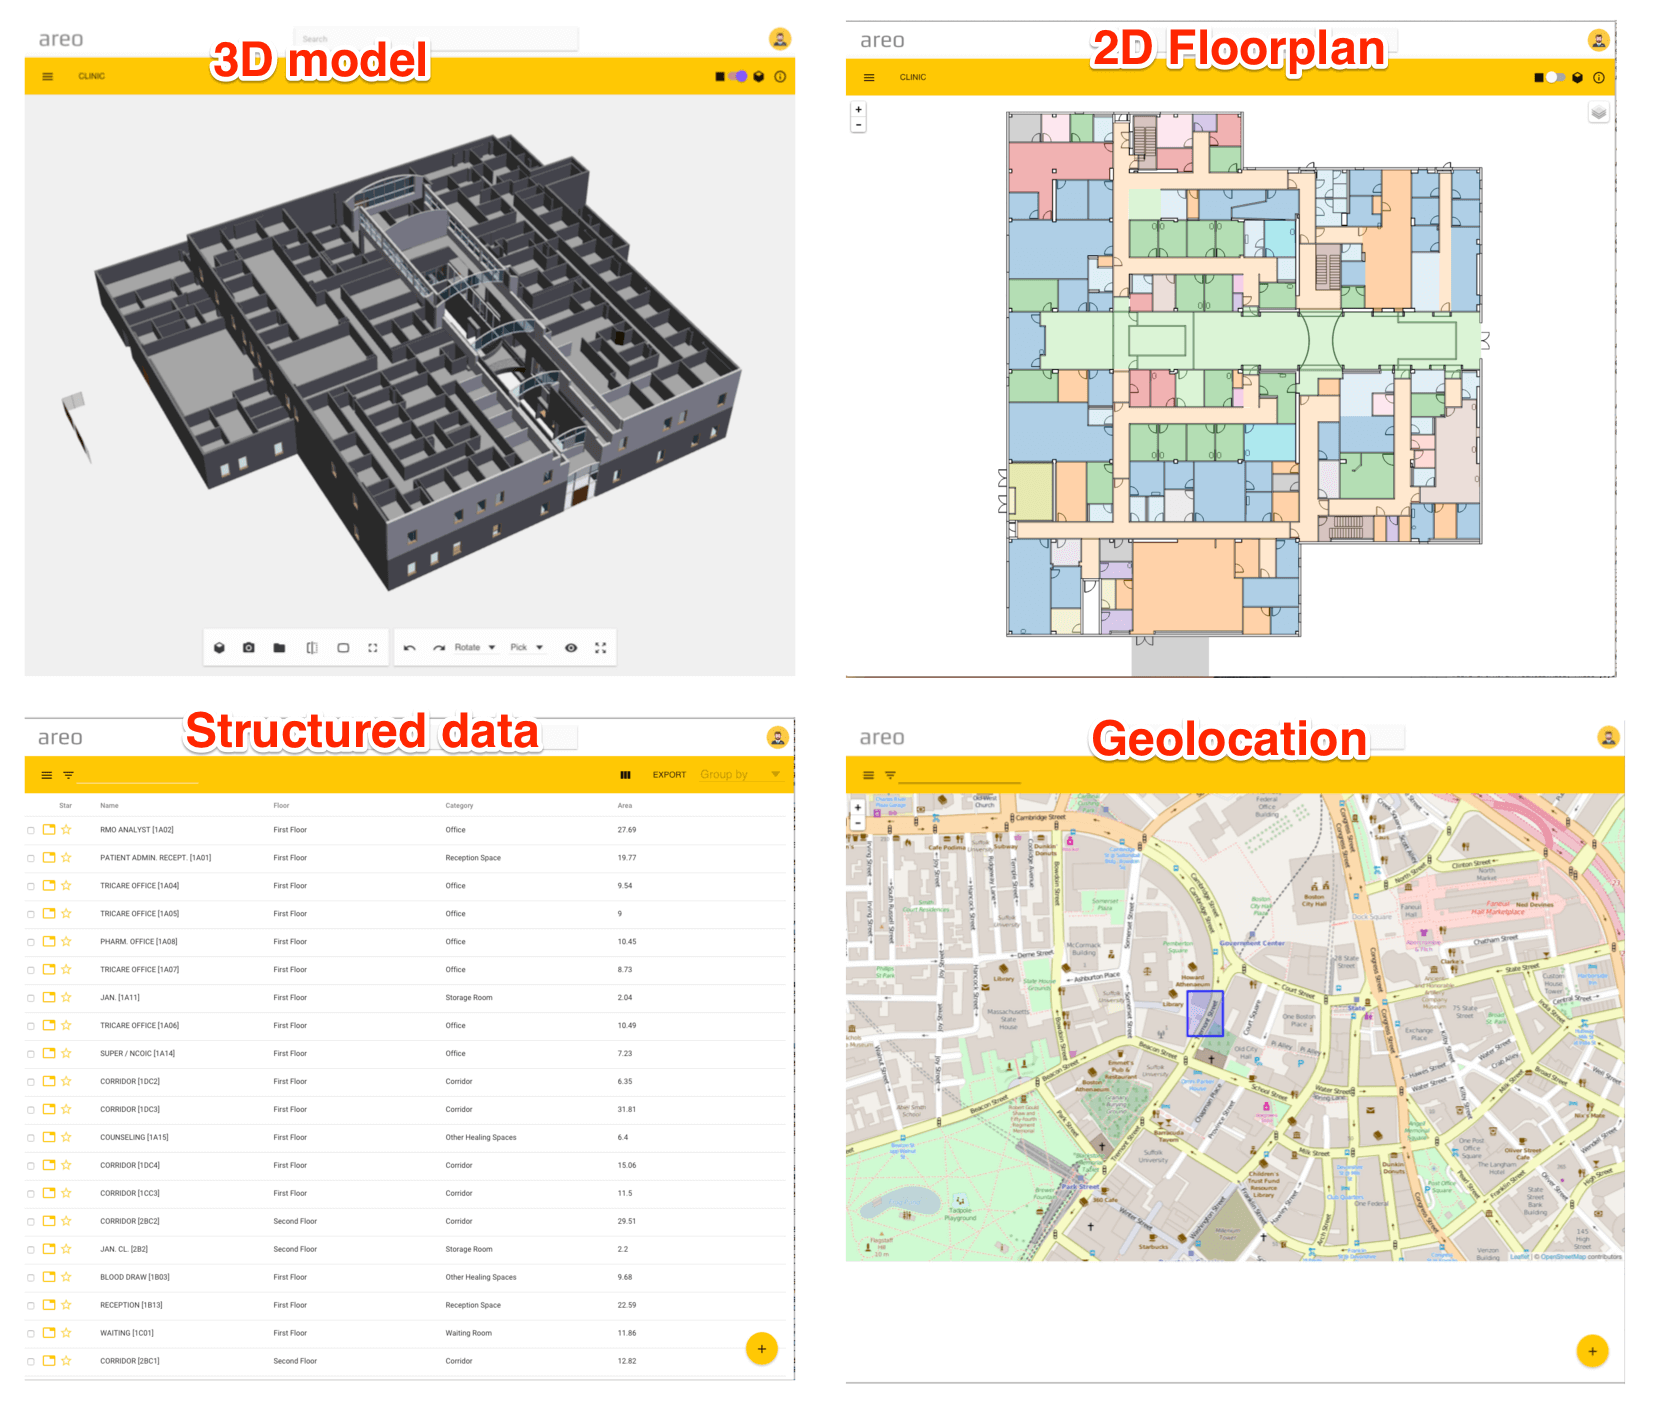 BIM FM Handover - IFC Different model views - 3d model, 2d floorplan, structured data, geolocation